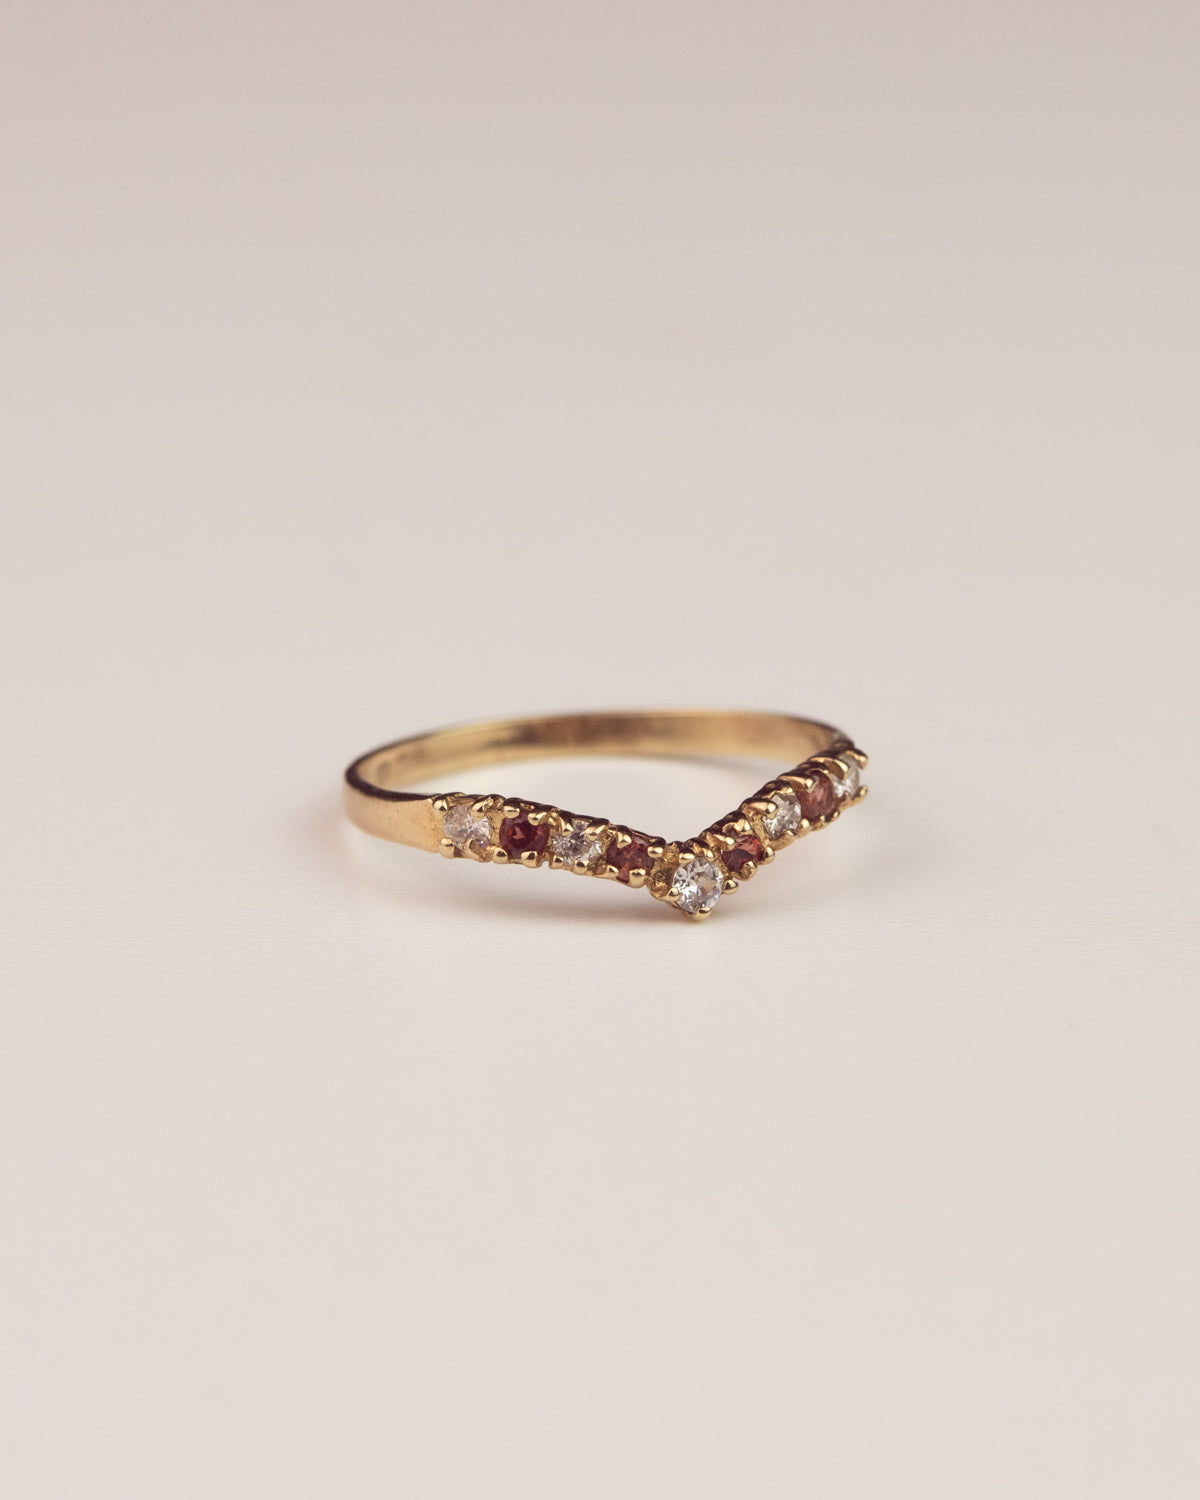 Image of Jessamy Exclusive Vintage 9ct Gold Wishbone Ring